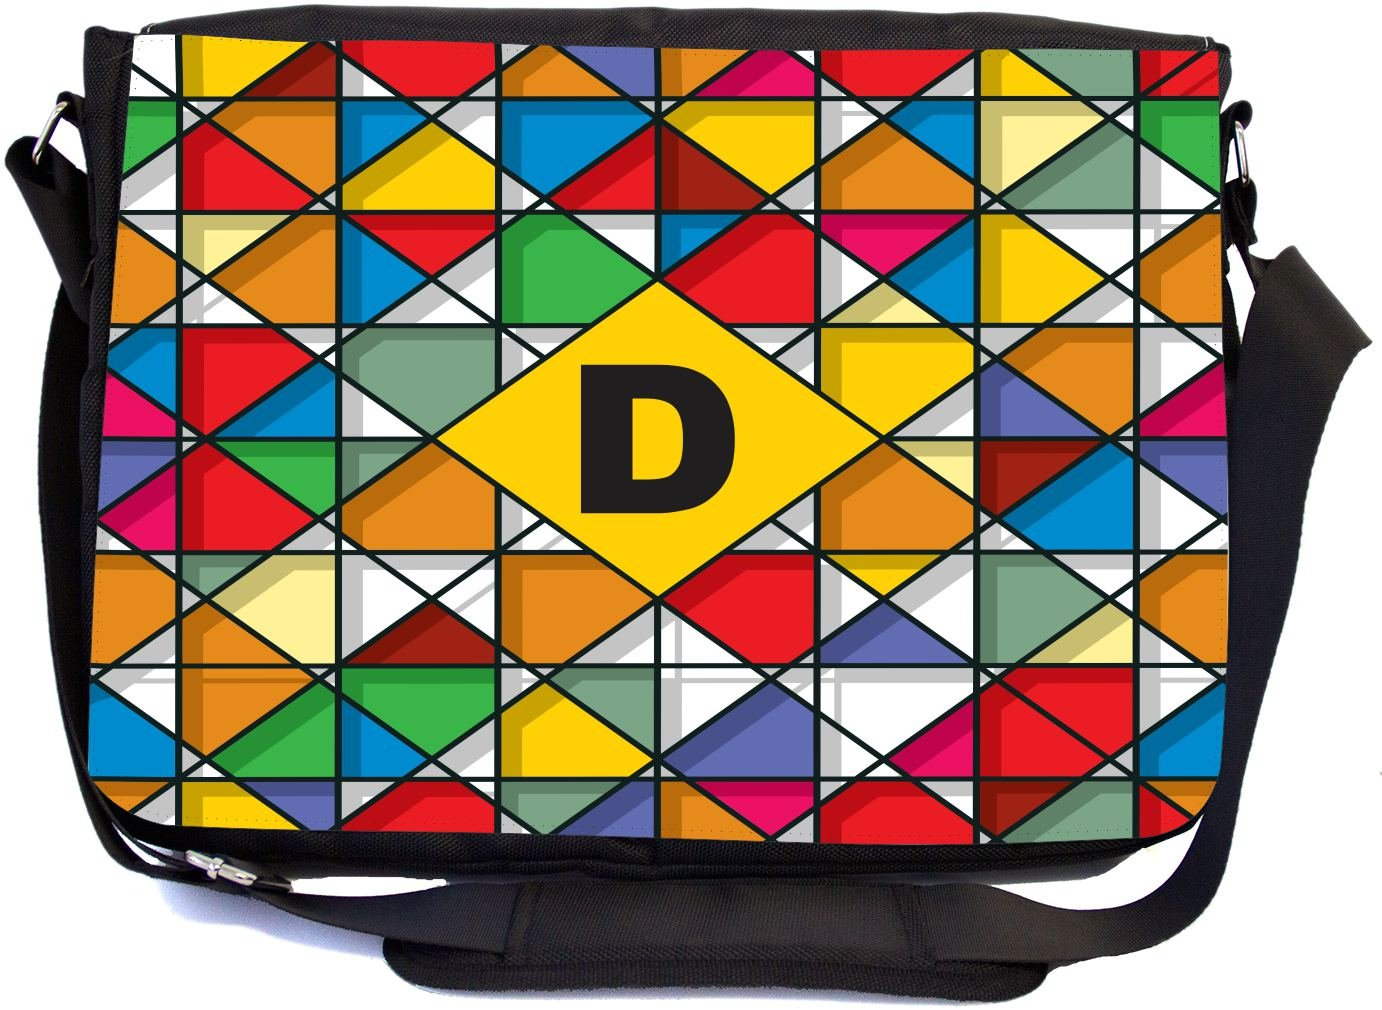 Rikki Knight Letter D Monogram Vibrant Colors Stained Glass Design Design Multifunctional Messenger Bag - School Bag - Laptop Bag - Includes Matching Compact Mirror